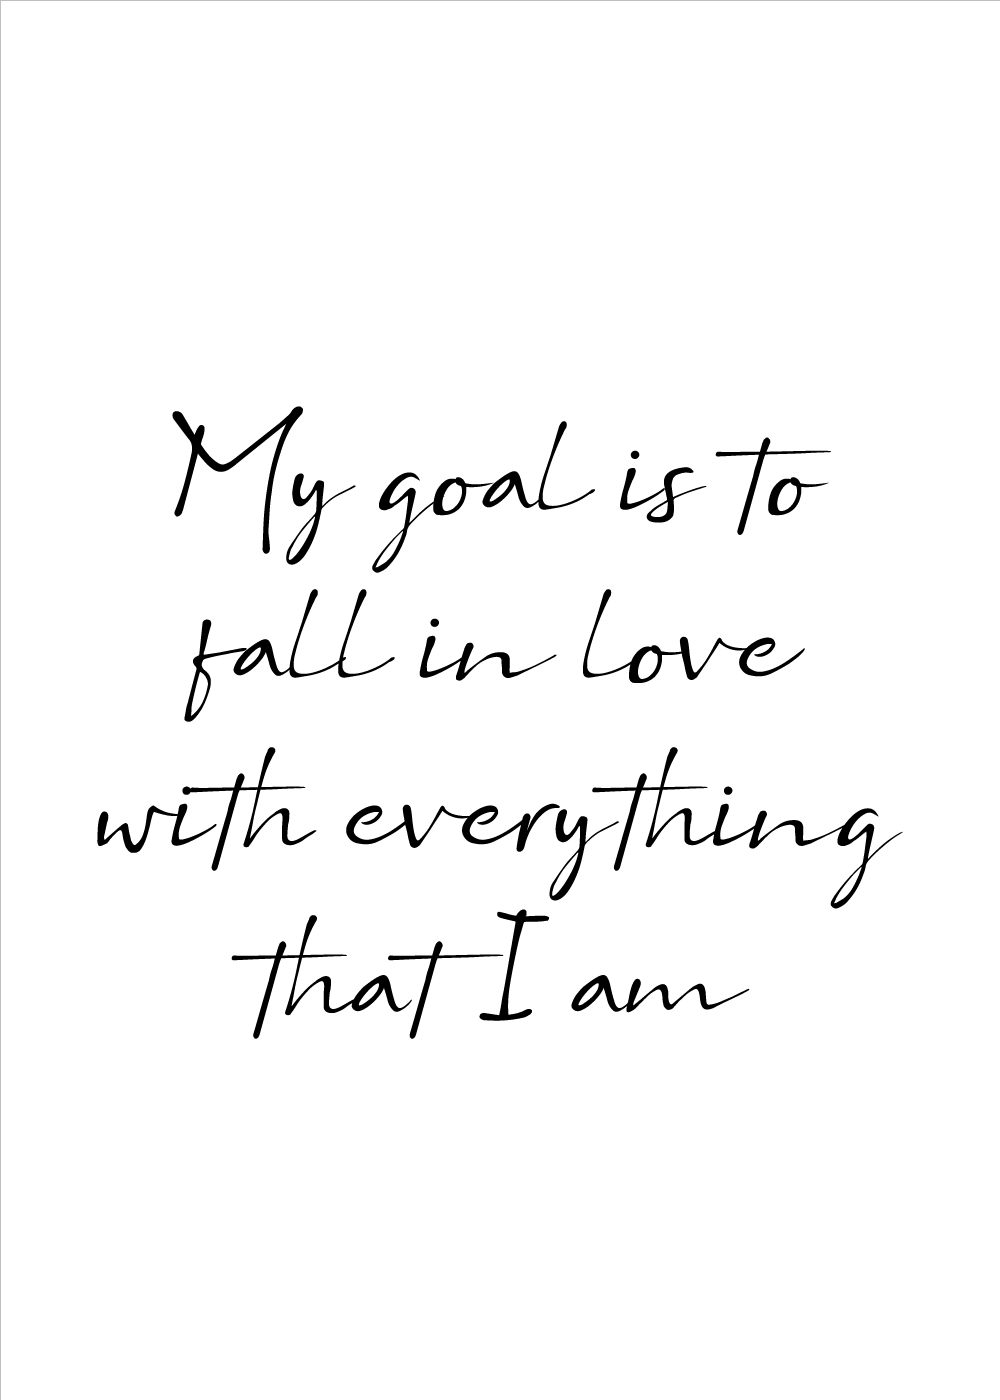 My goal is to fall in love - Body positivity plakat